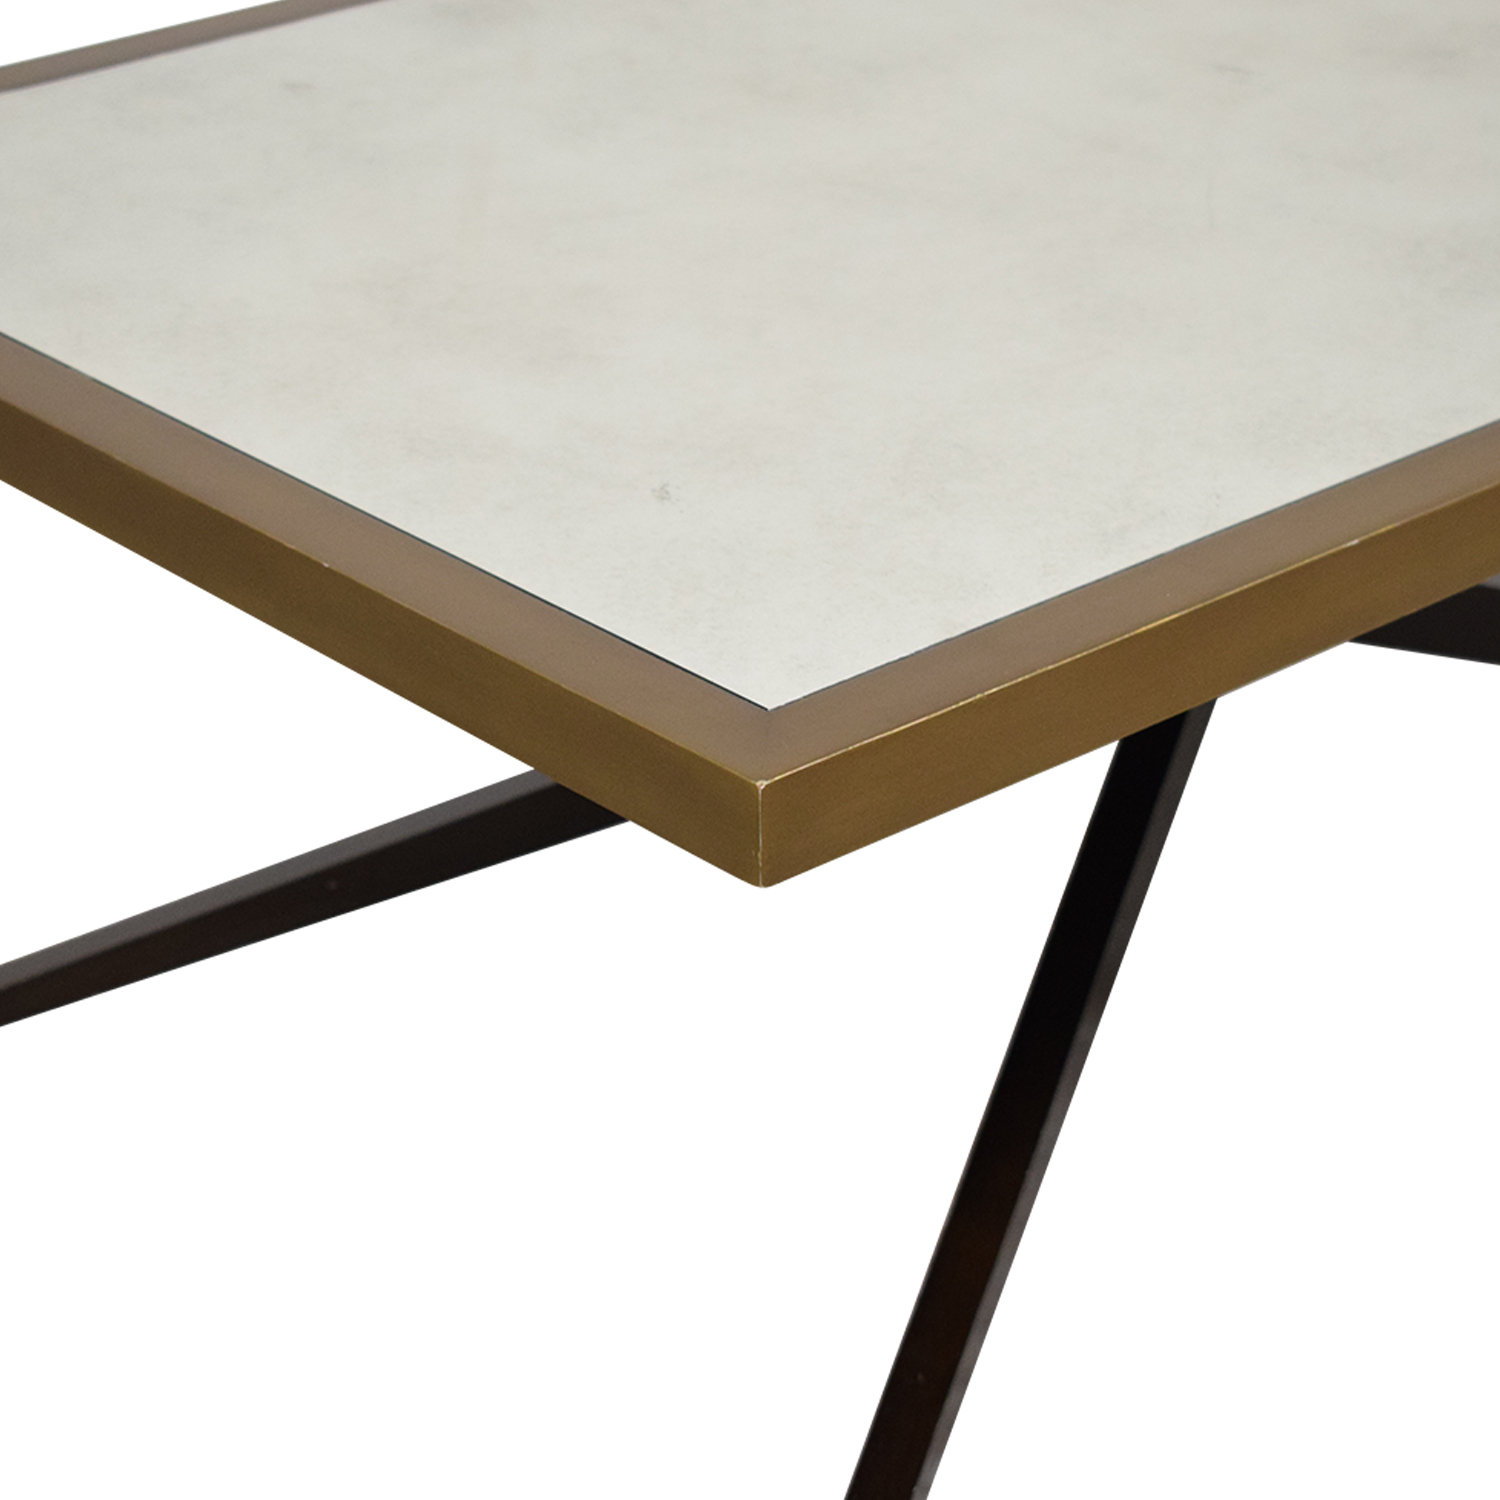 70 Off Kathy Kuo Home Mr Brown Atlantis Modern Cross Pin Br Antique Mirror Coffee Table Tables